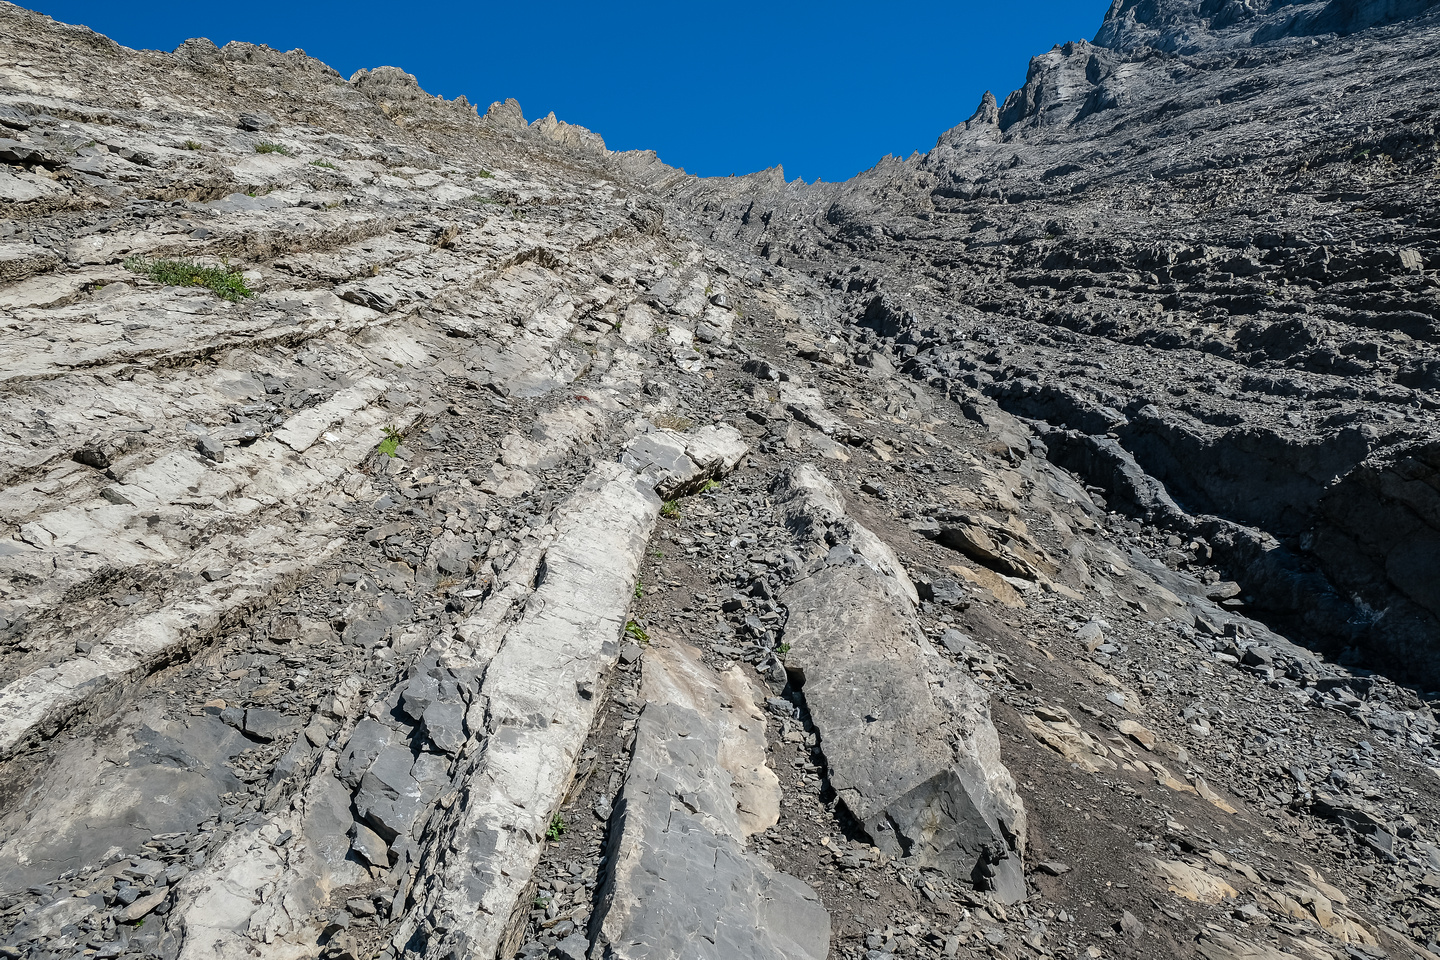 Using rock ribs and slabs in the gully makes for a speedy and safer ascent.